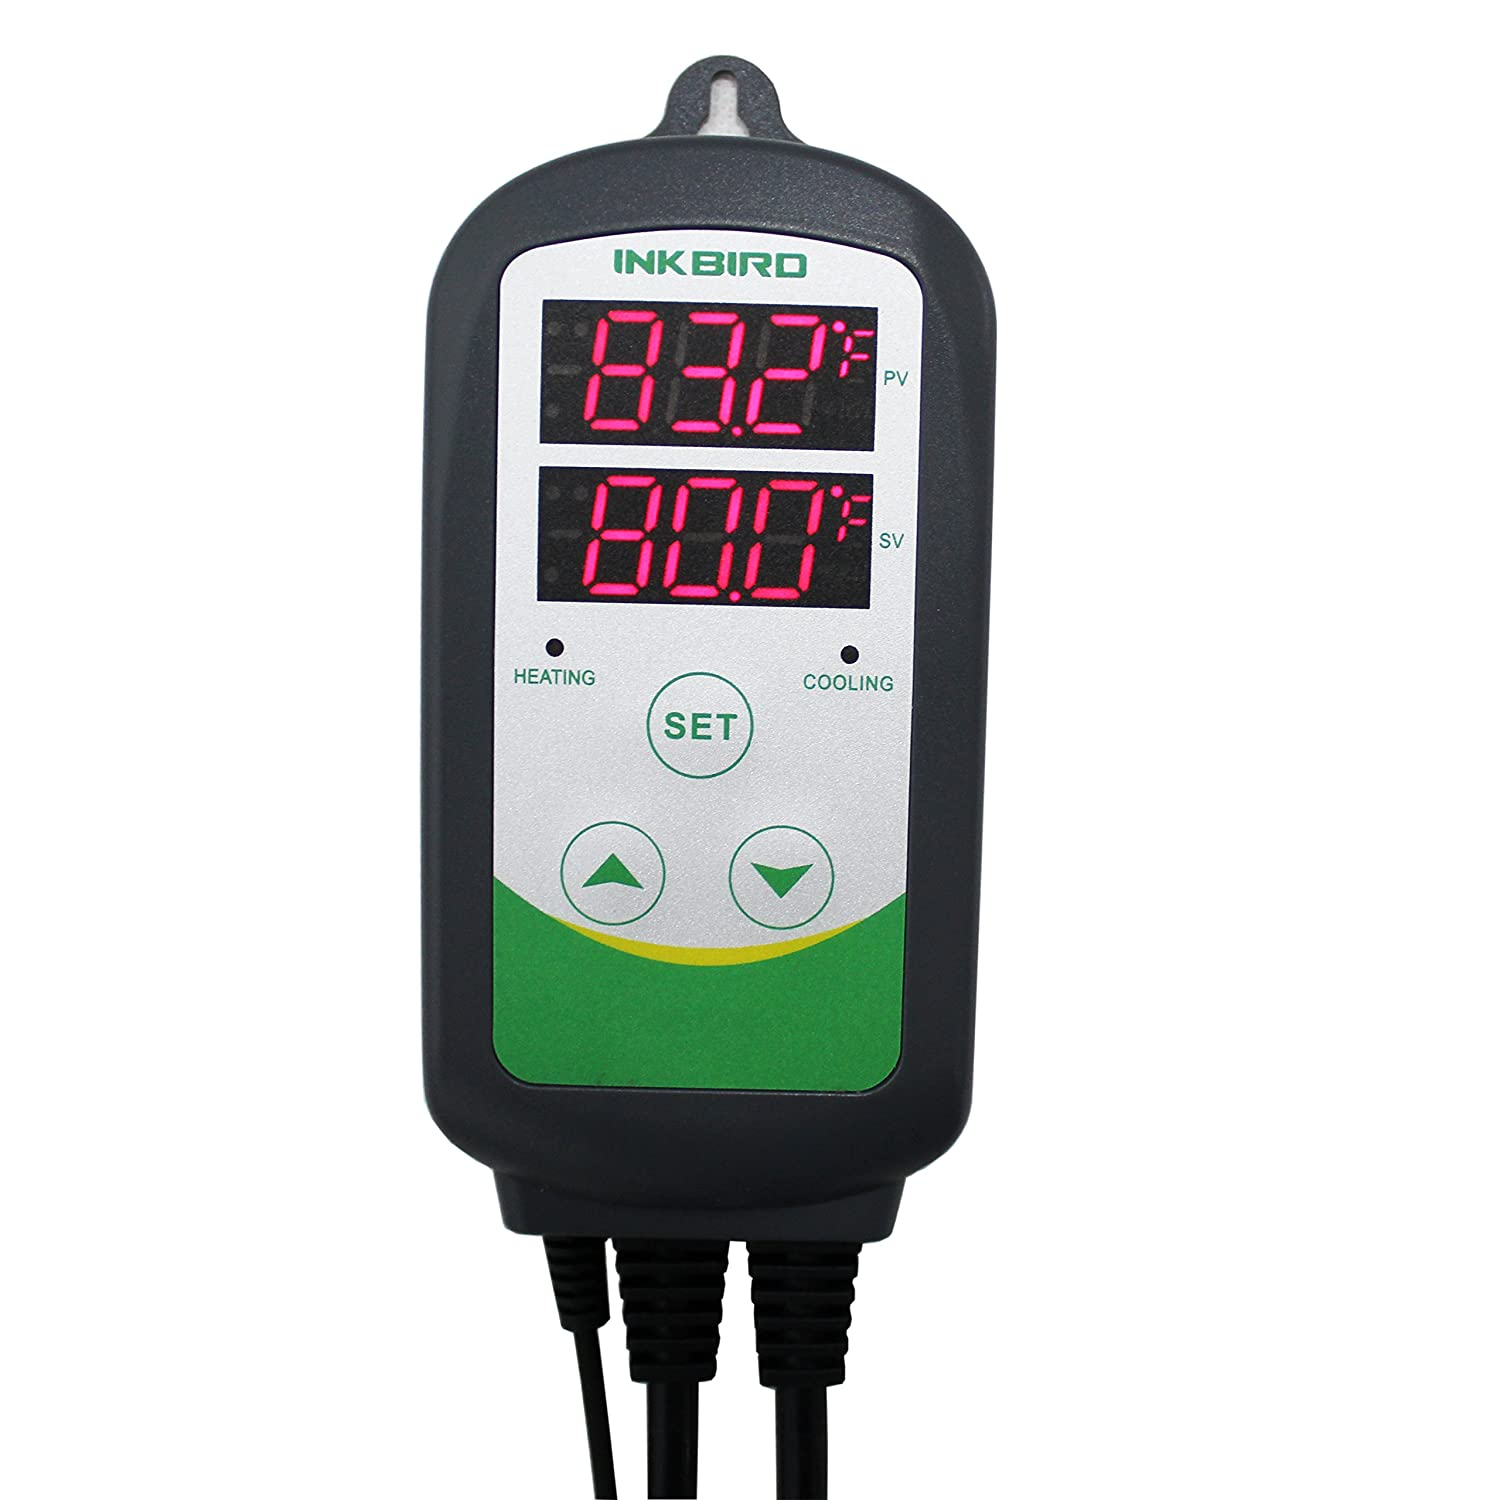 Inkbird Itc-308 Digital Temperature Controller Outlet Thermostat, 2 ...